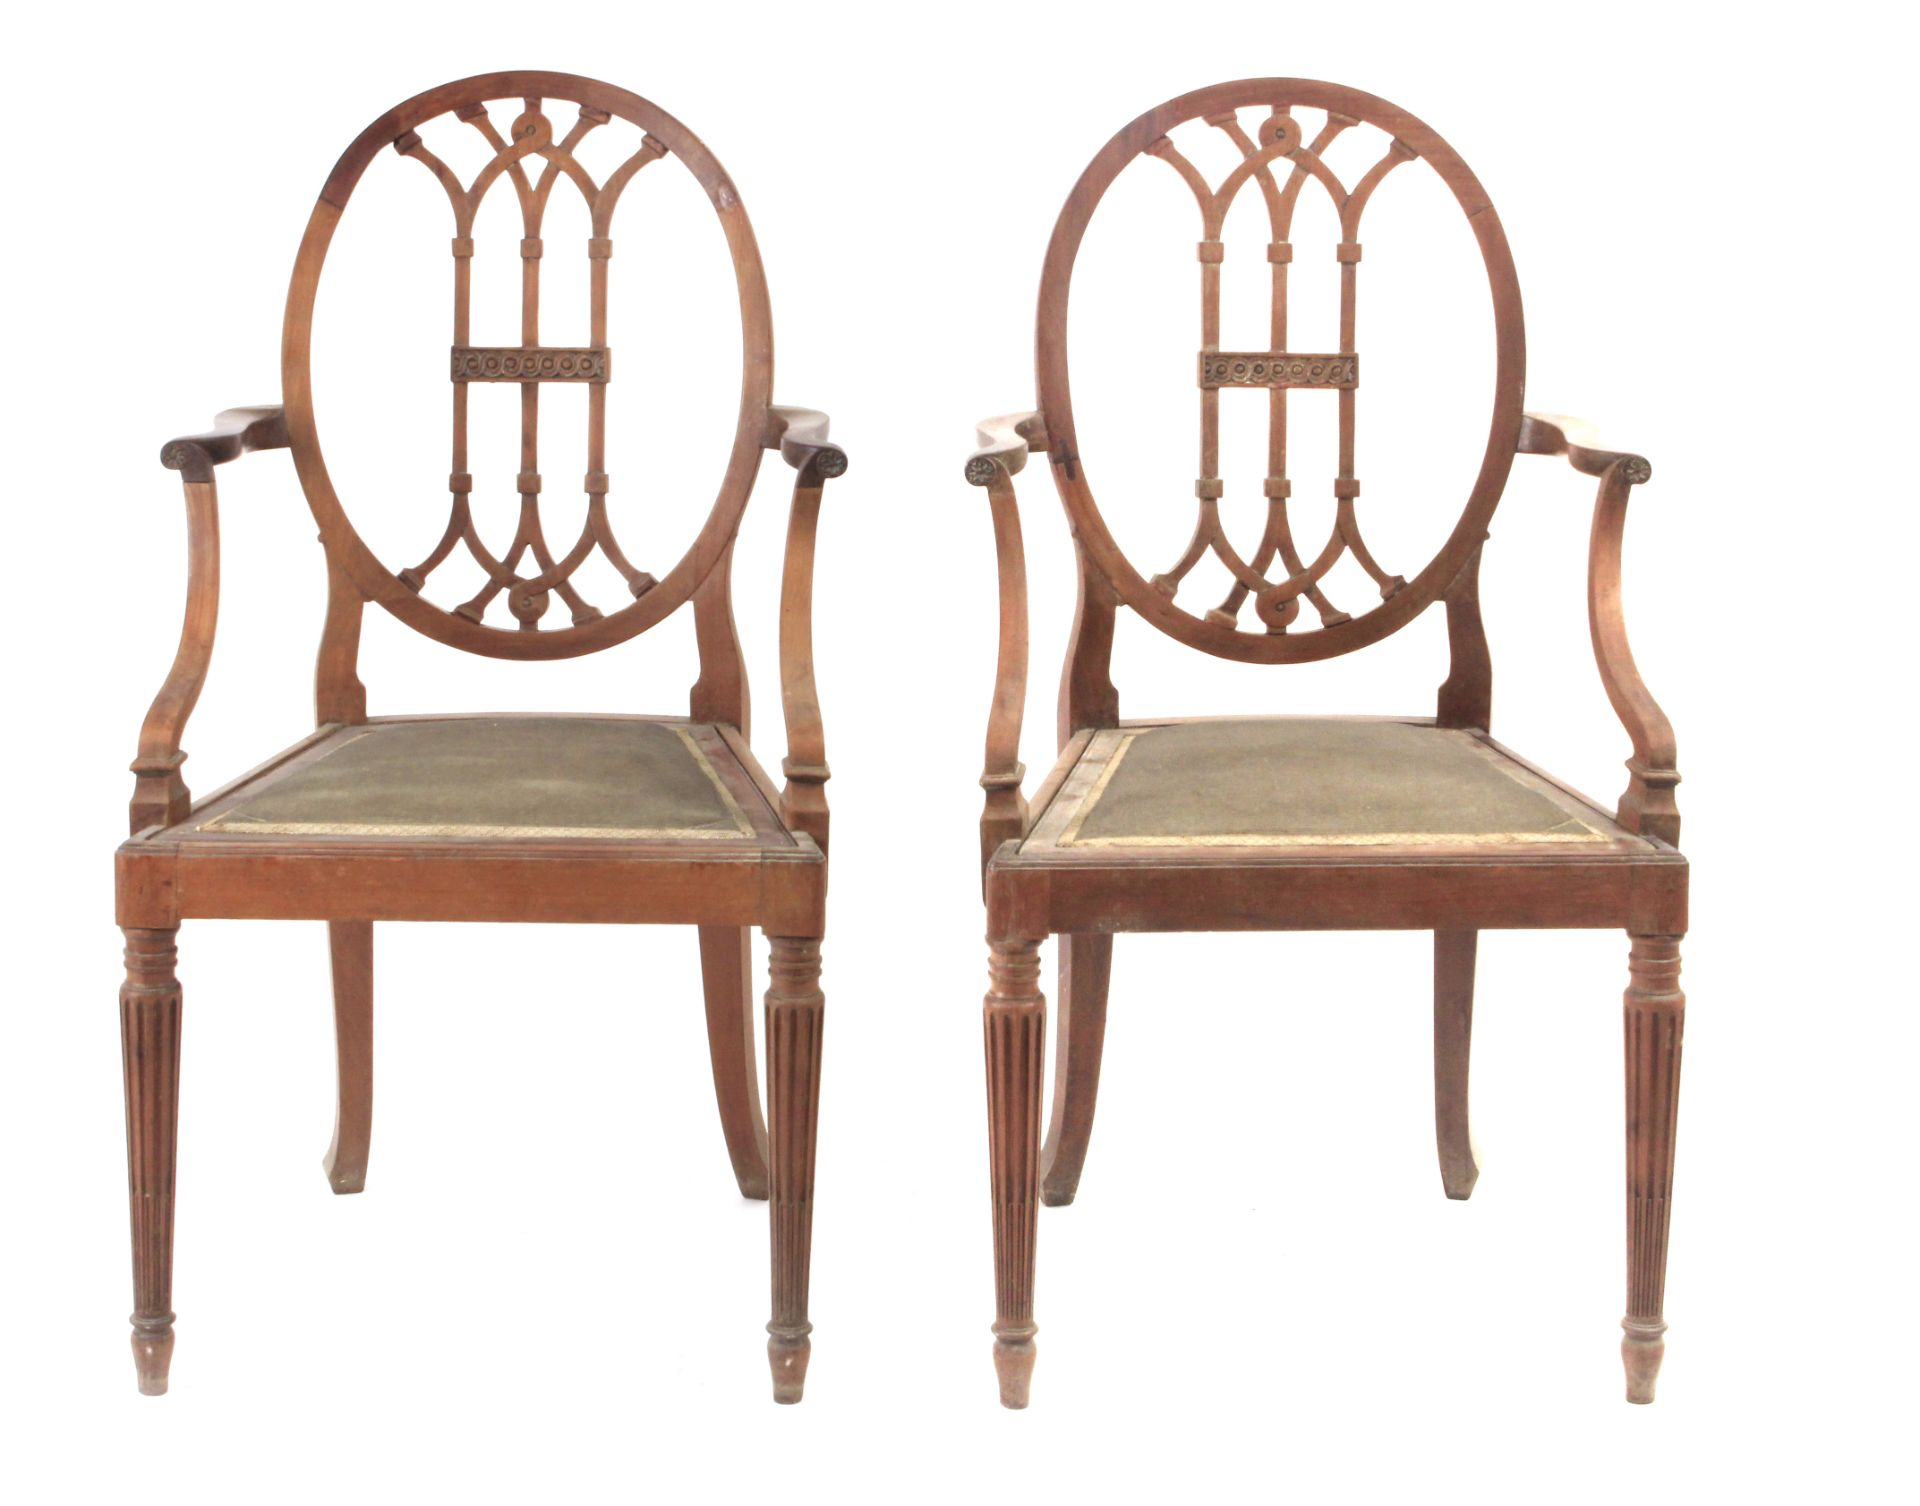 A pair of 19th century mahogany ship chairs - Bild 2 aus 5